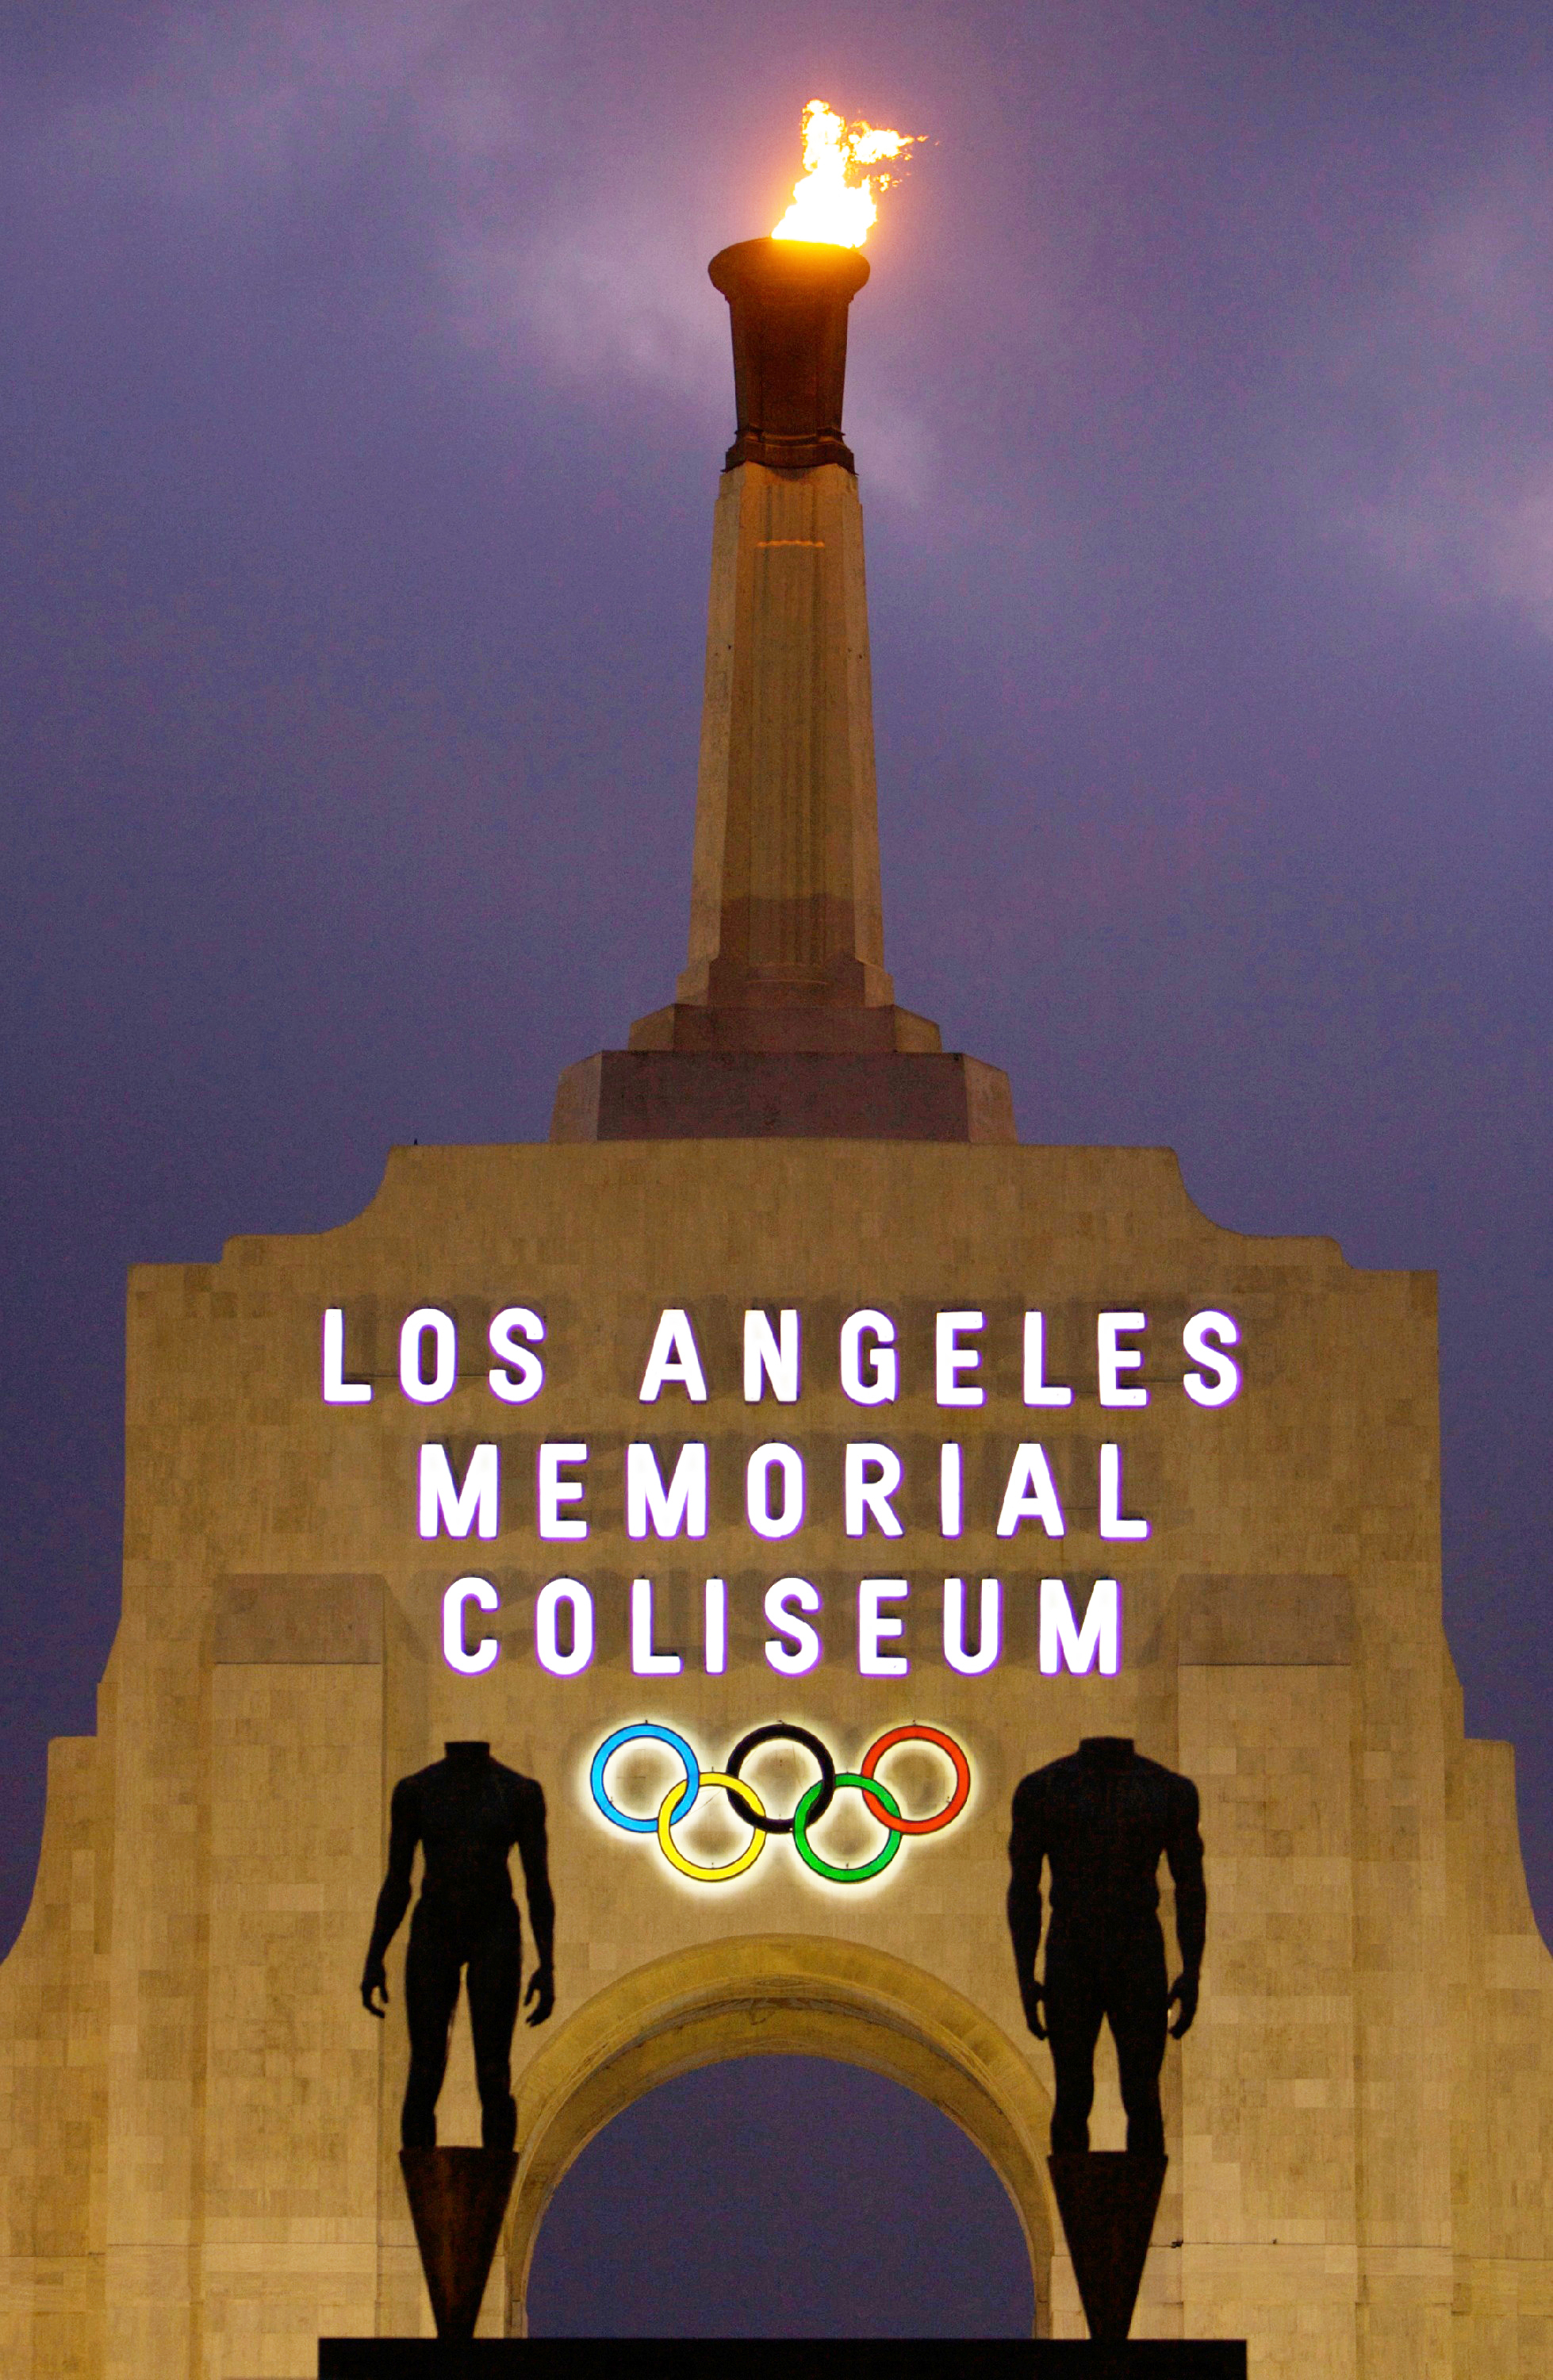 FILE - This Feb. 13, 2008, file photo shows the facade of Los Angeles Memorial Coliseum in Los Angeles. Los Angeles Olympic planners competing for the 2024 Games promised Thursday, Feb. 2, 2017, to help restore credibility and stability to international s